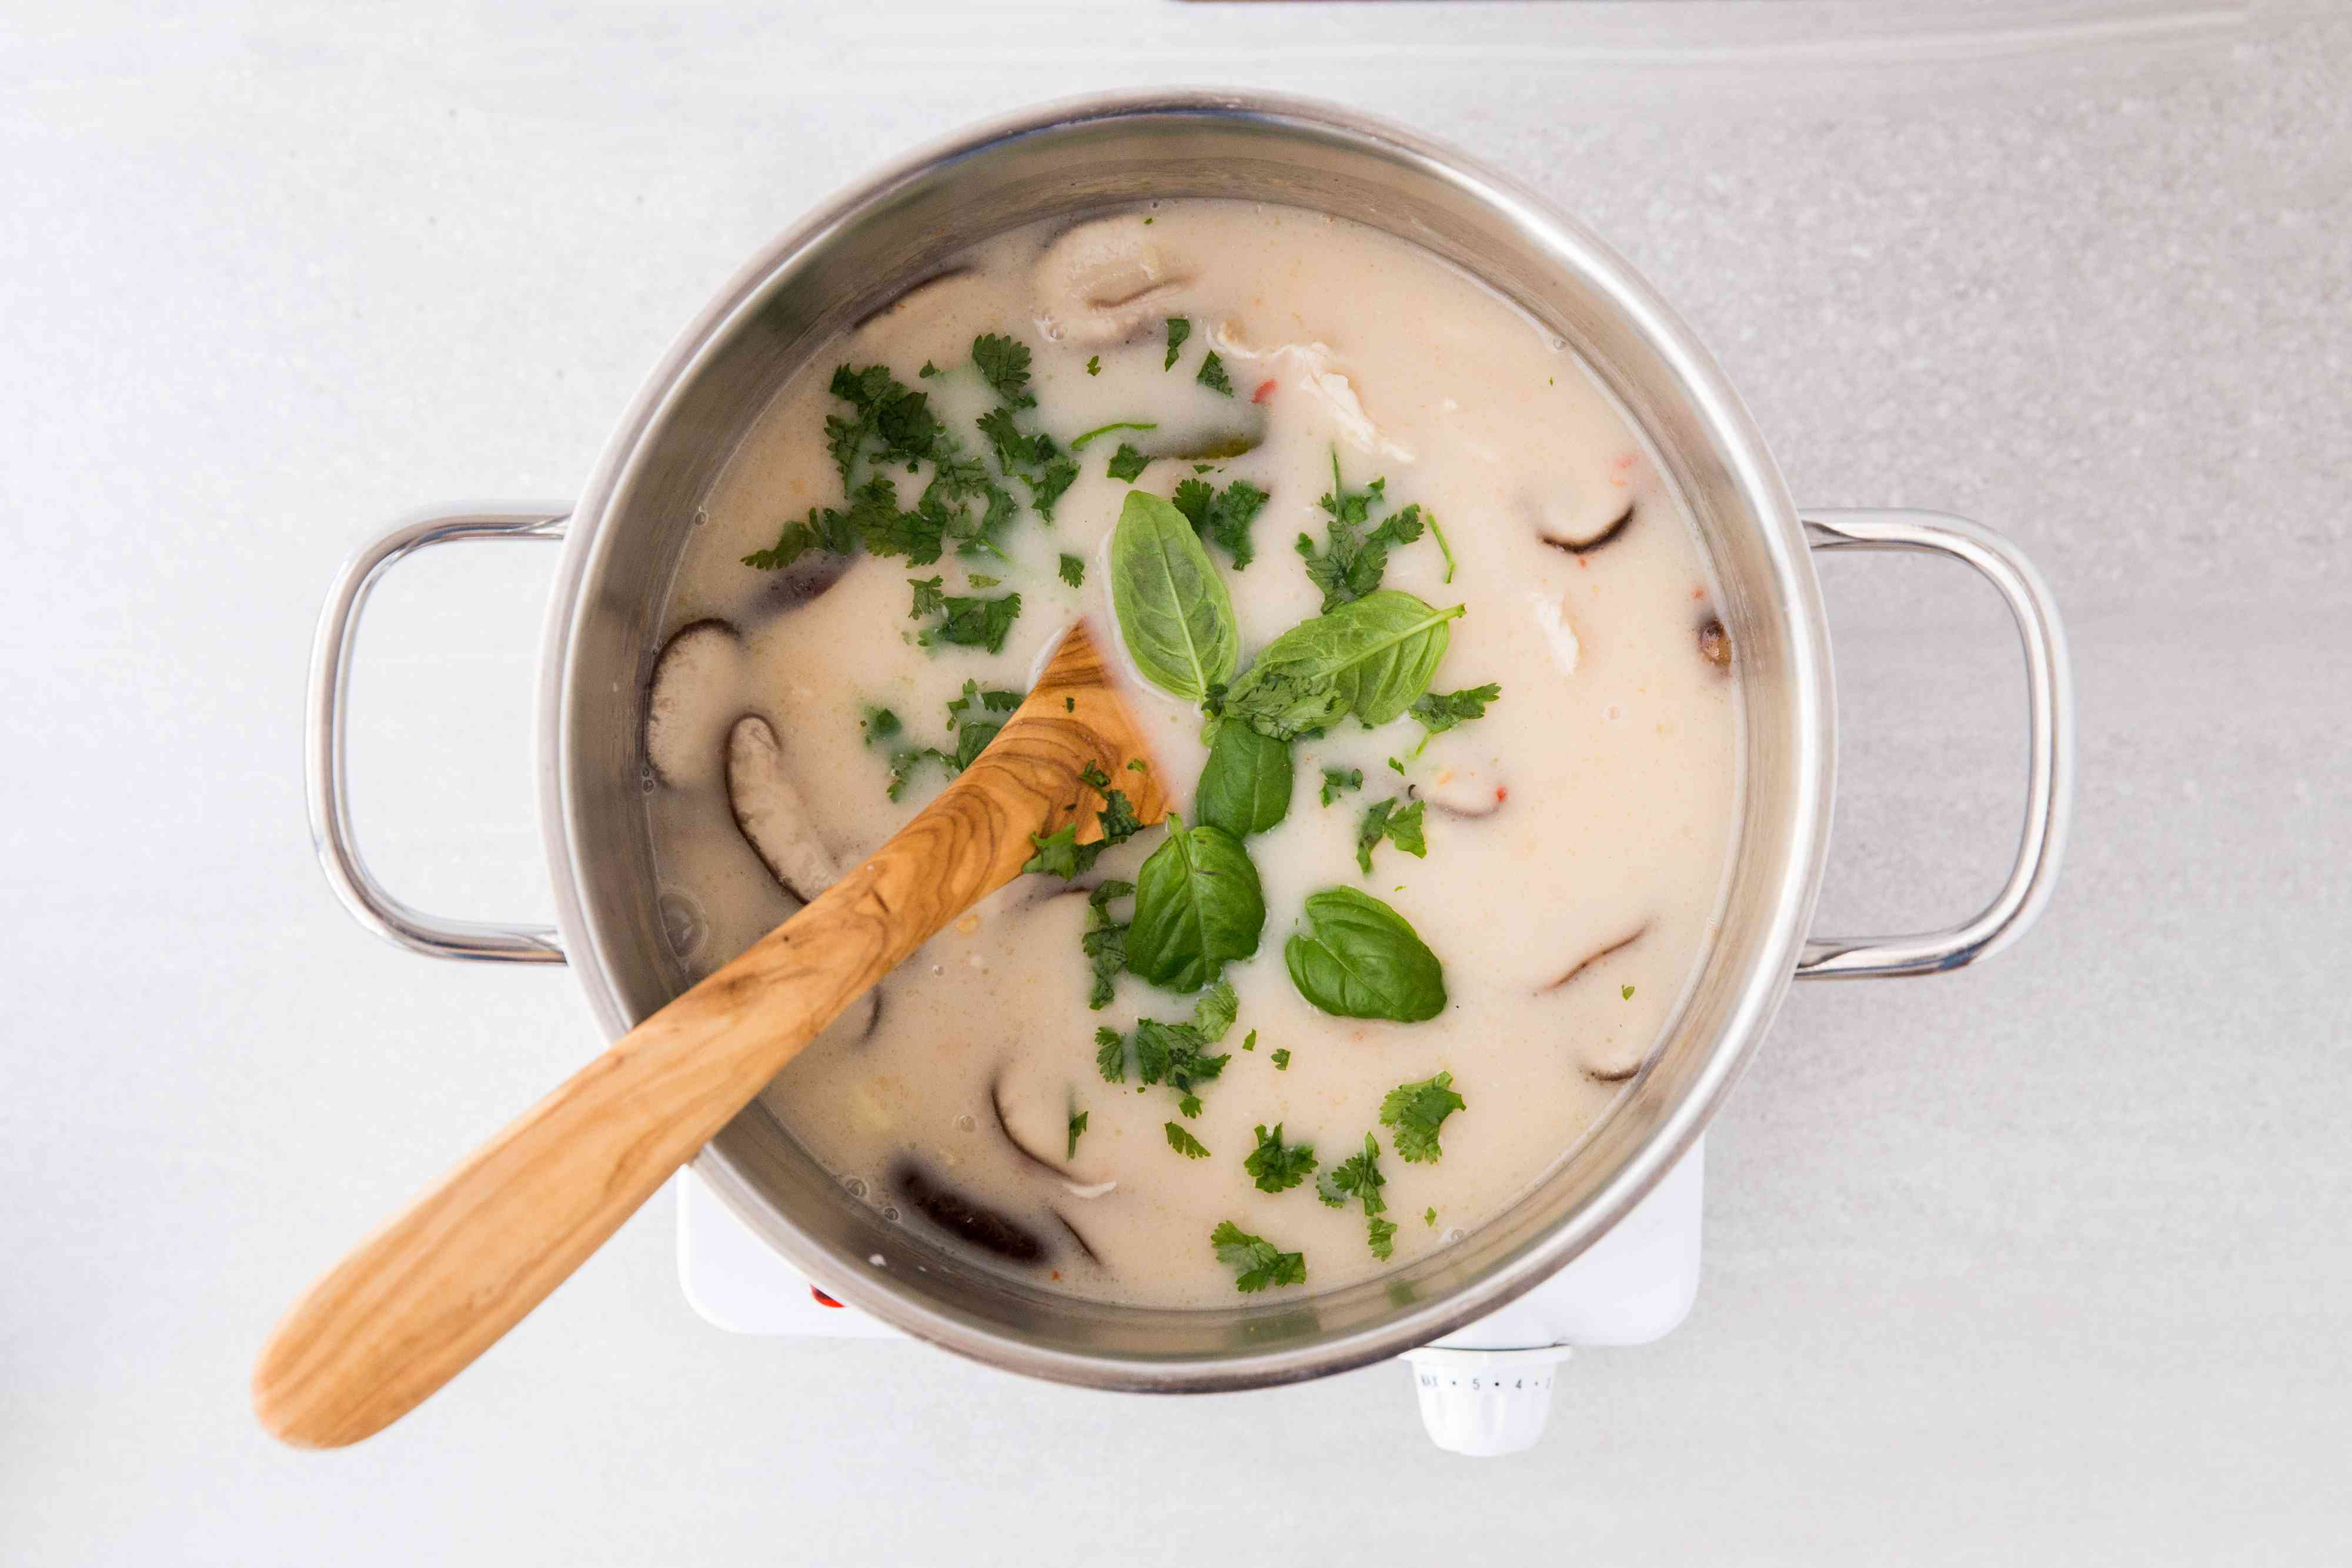 Add the ginger, coconut milk, the fish sauce, and extra vegetables to the soup in the pot